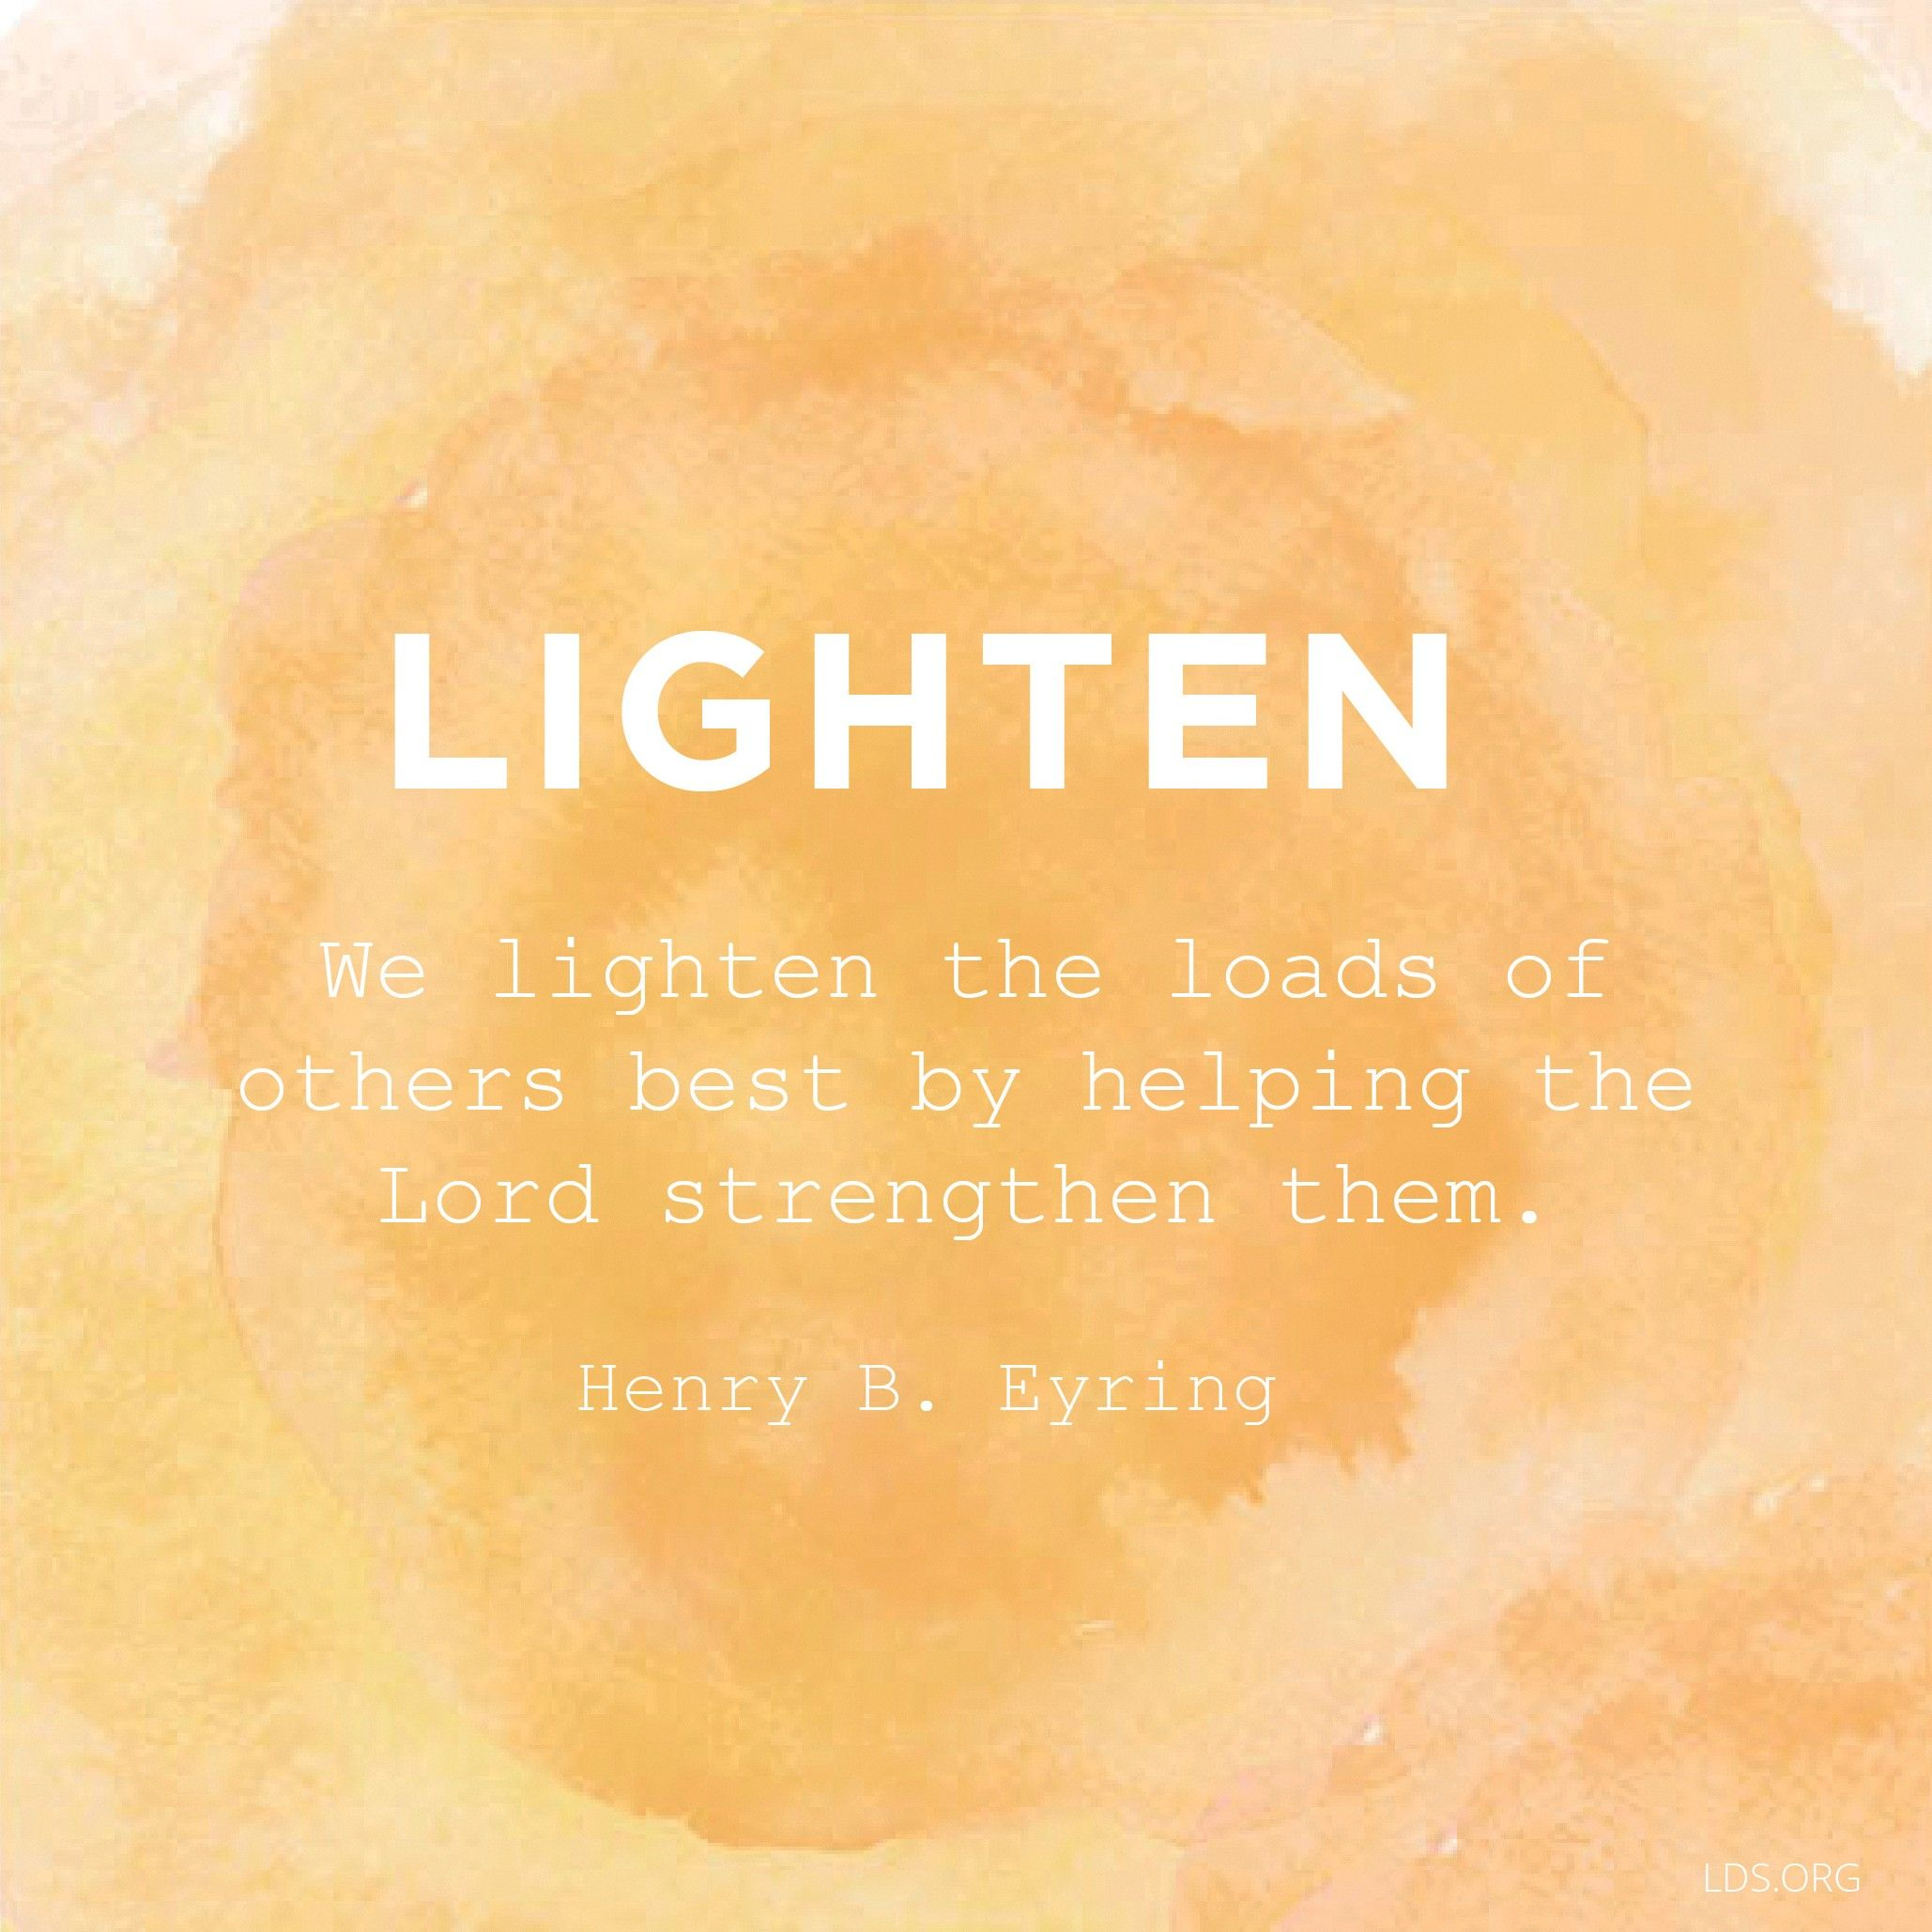 """""""We lighten the loads of others best by helping the Lord strengthen them.""""—President Henry B. Eyring, """"The Comforter"""""""